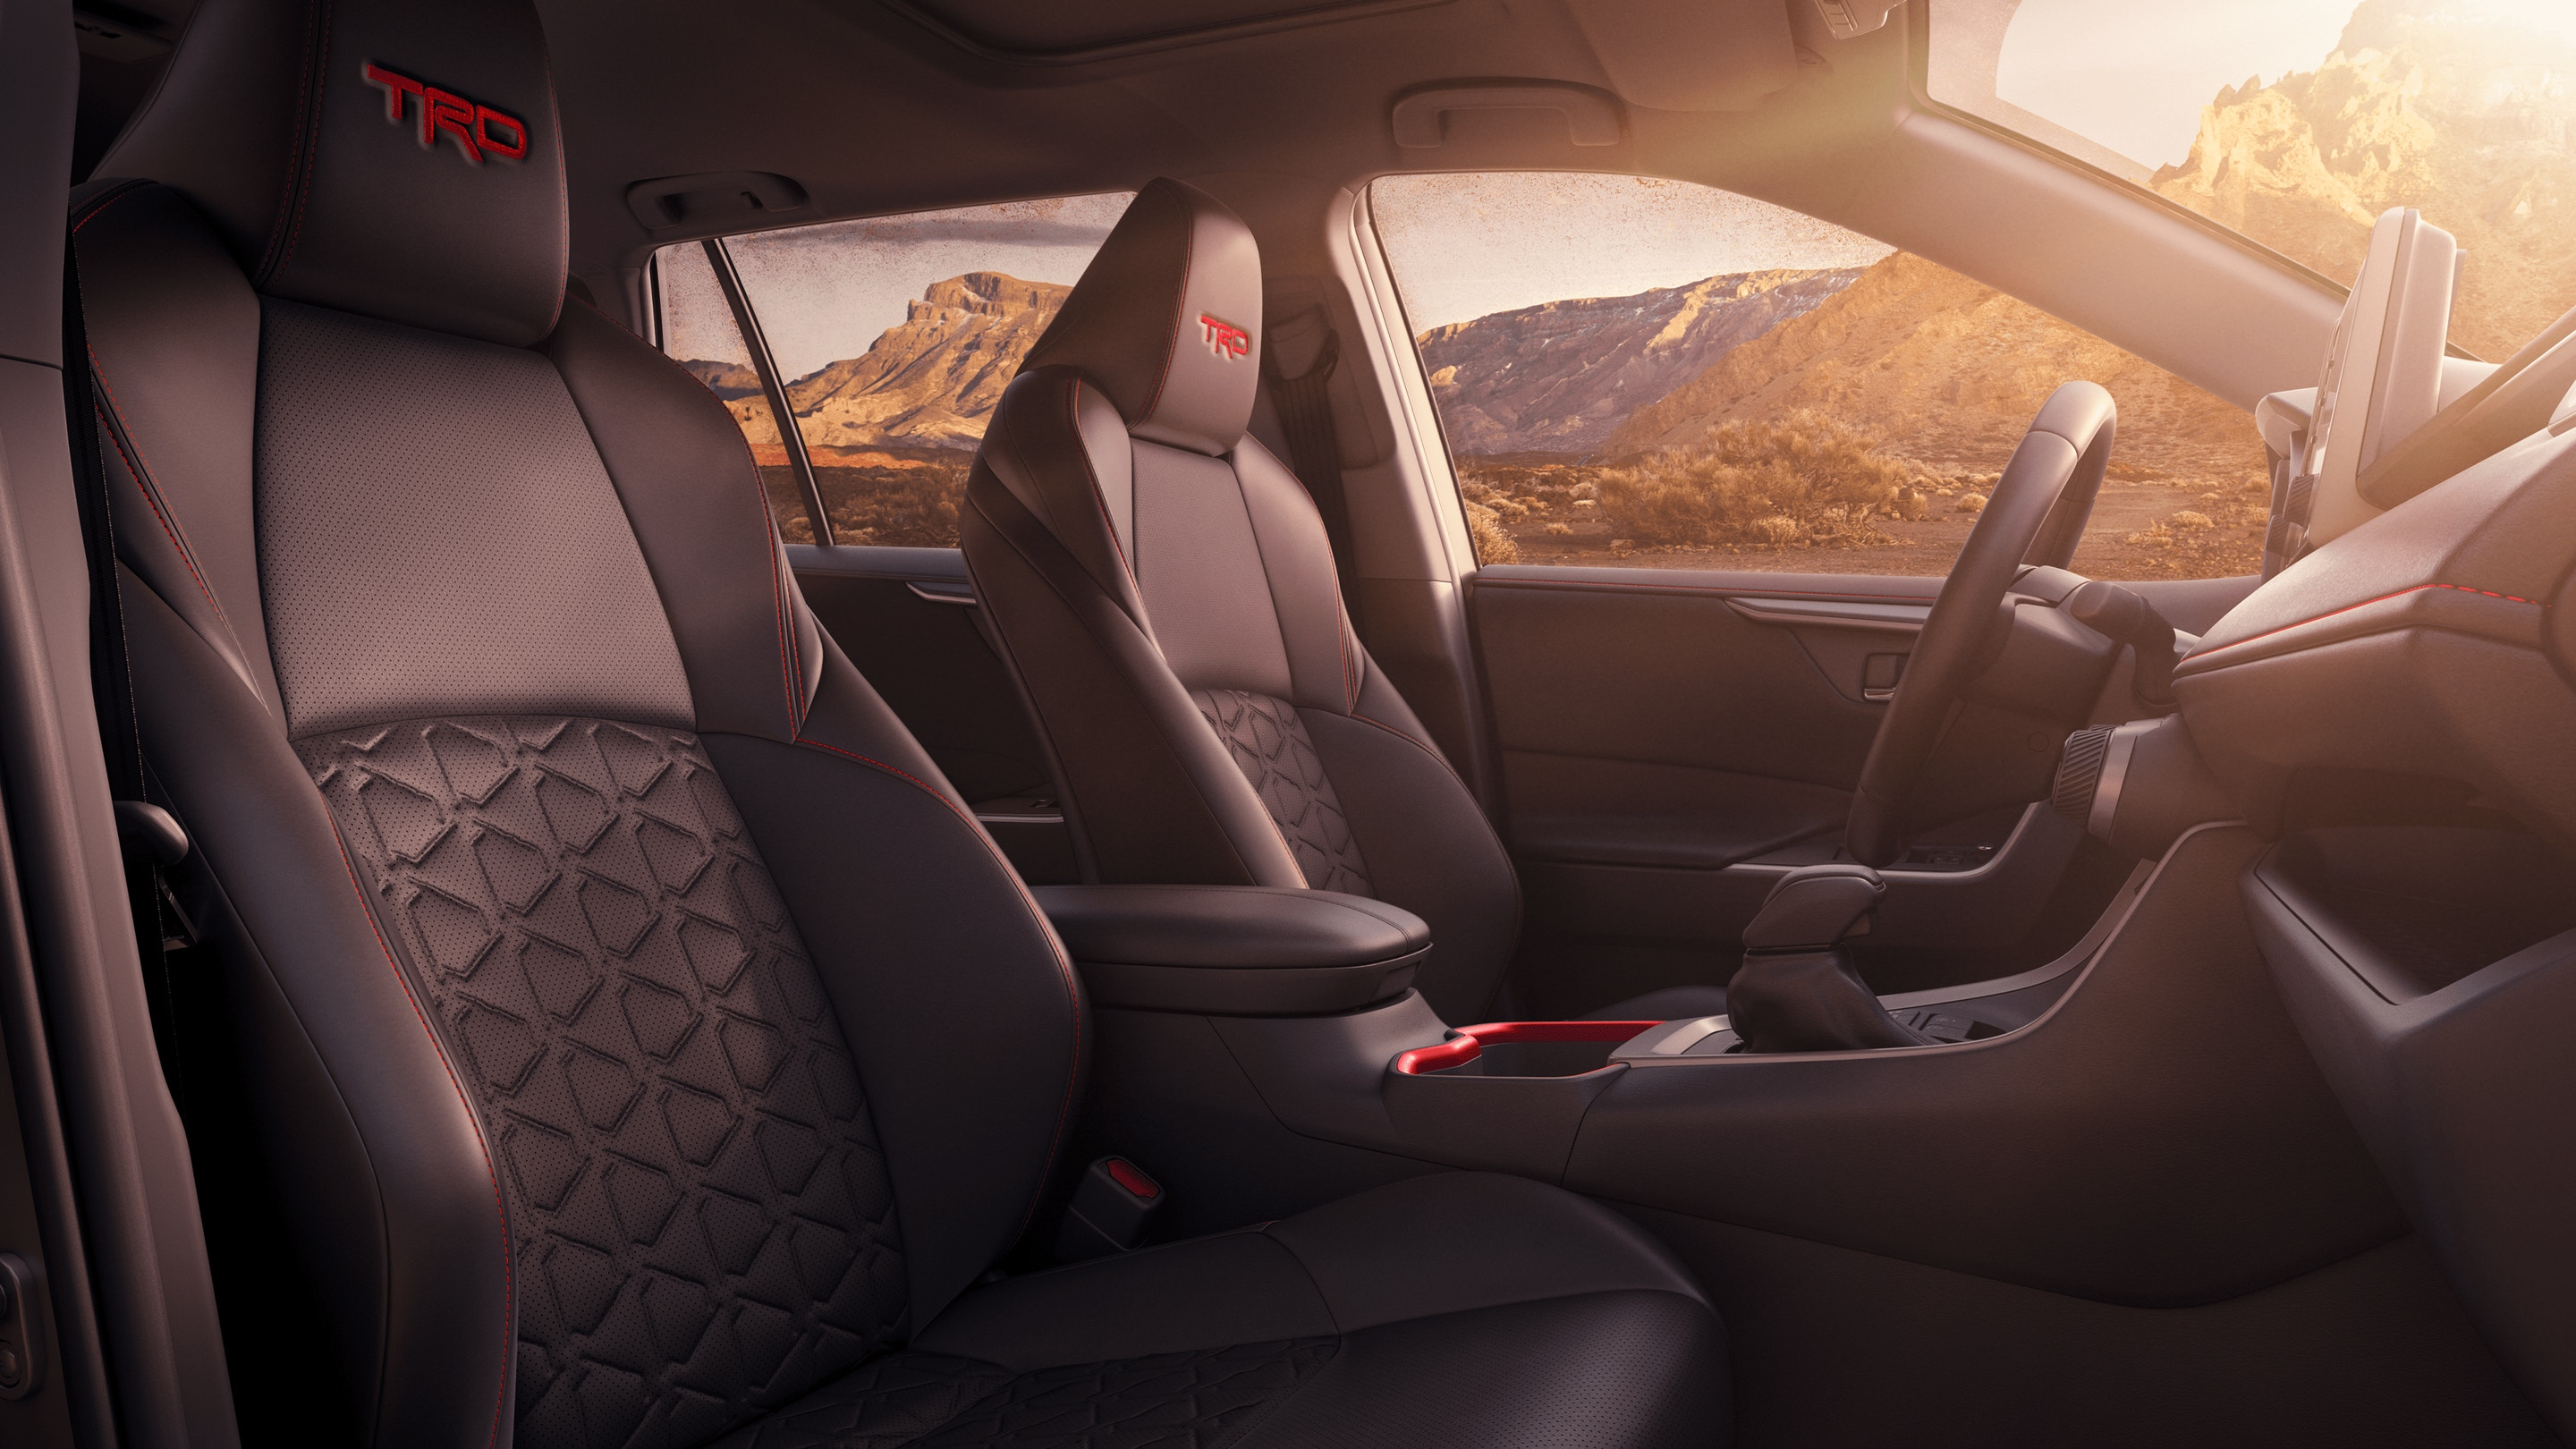 2020 Toyota RAV4 Seating